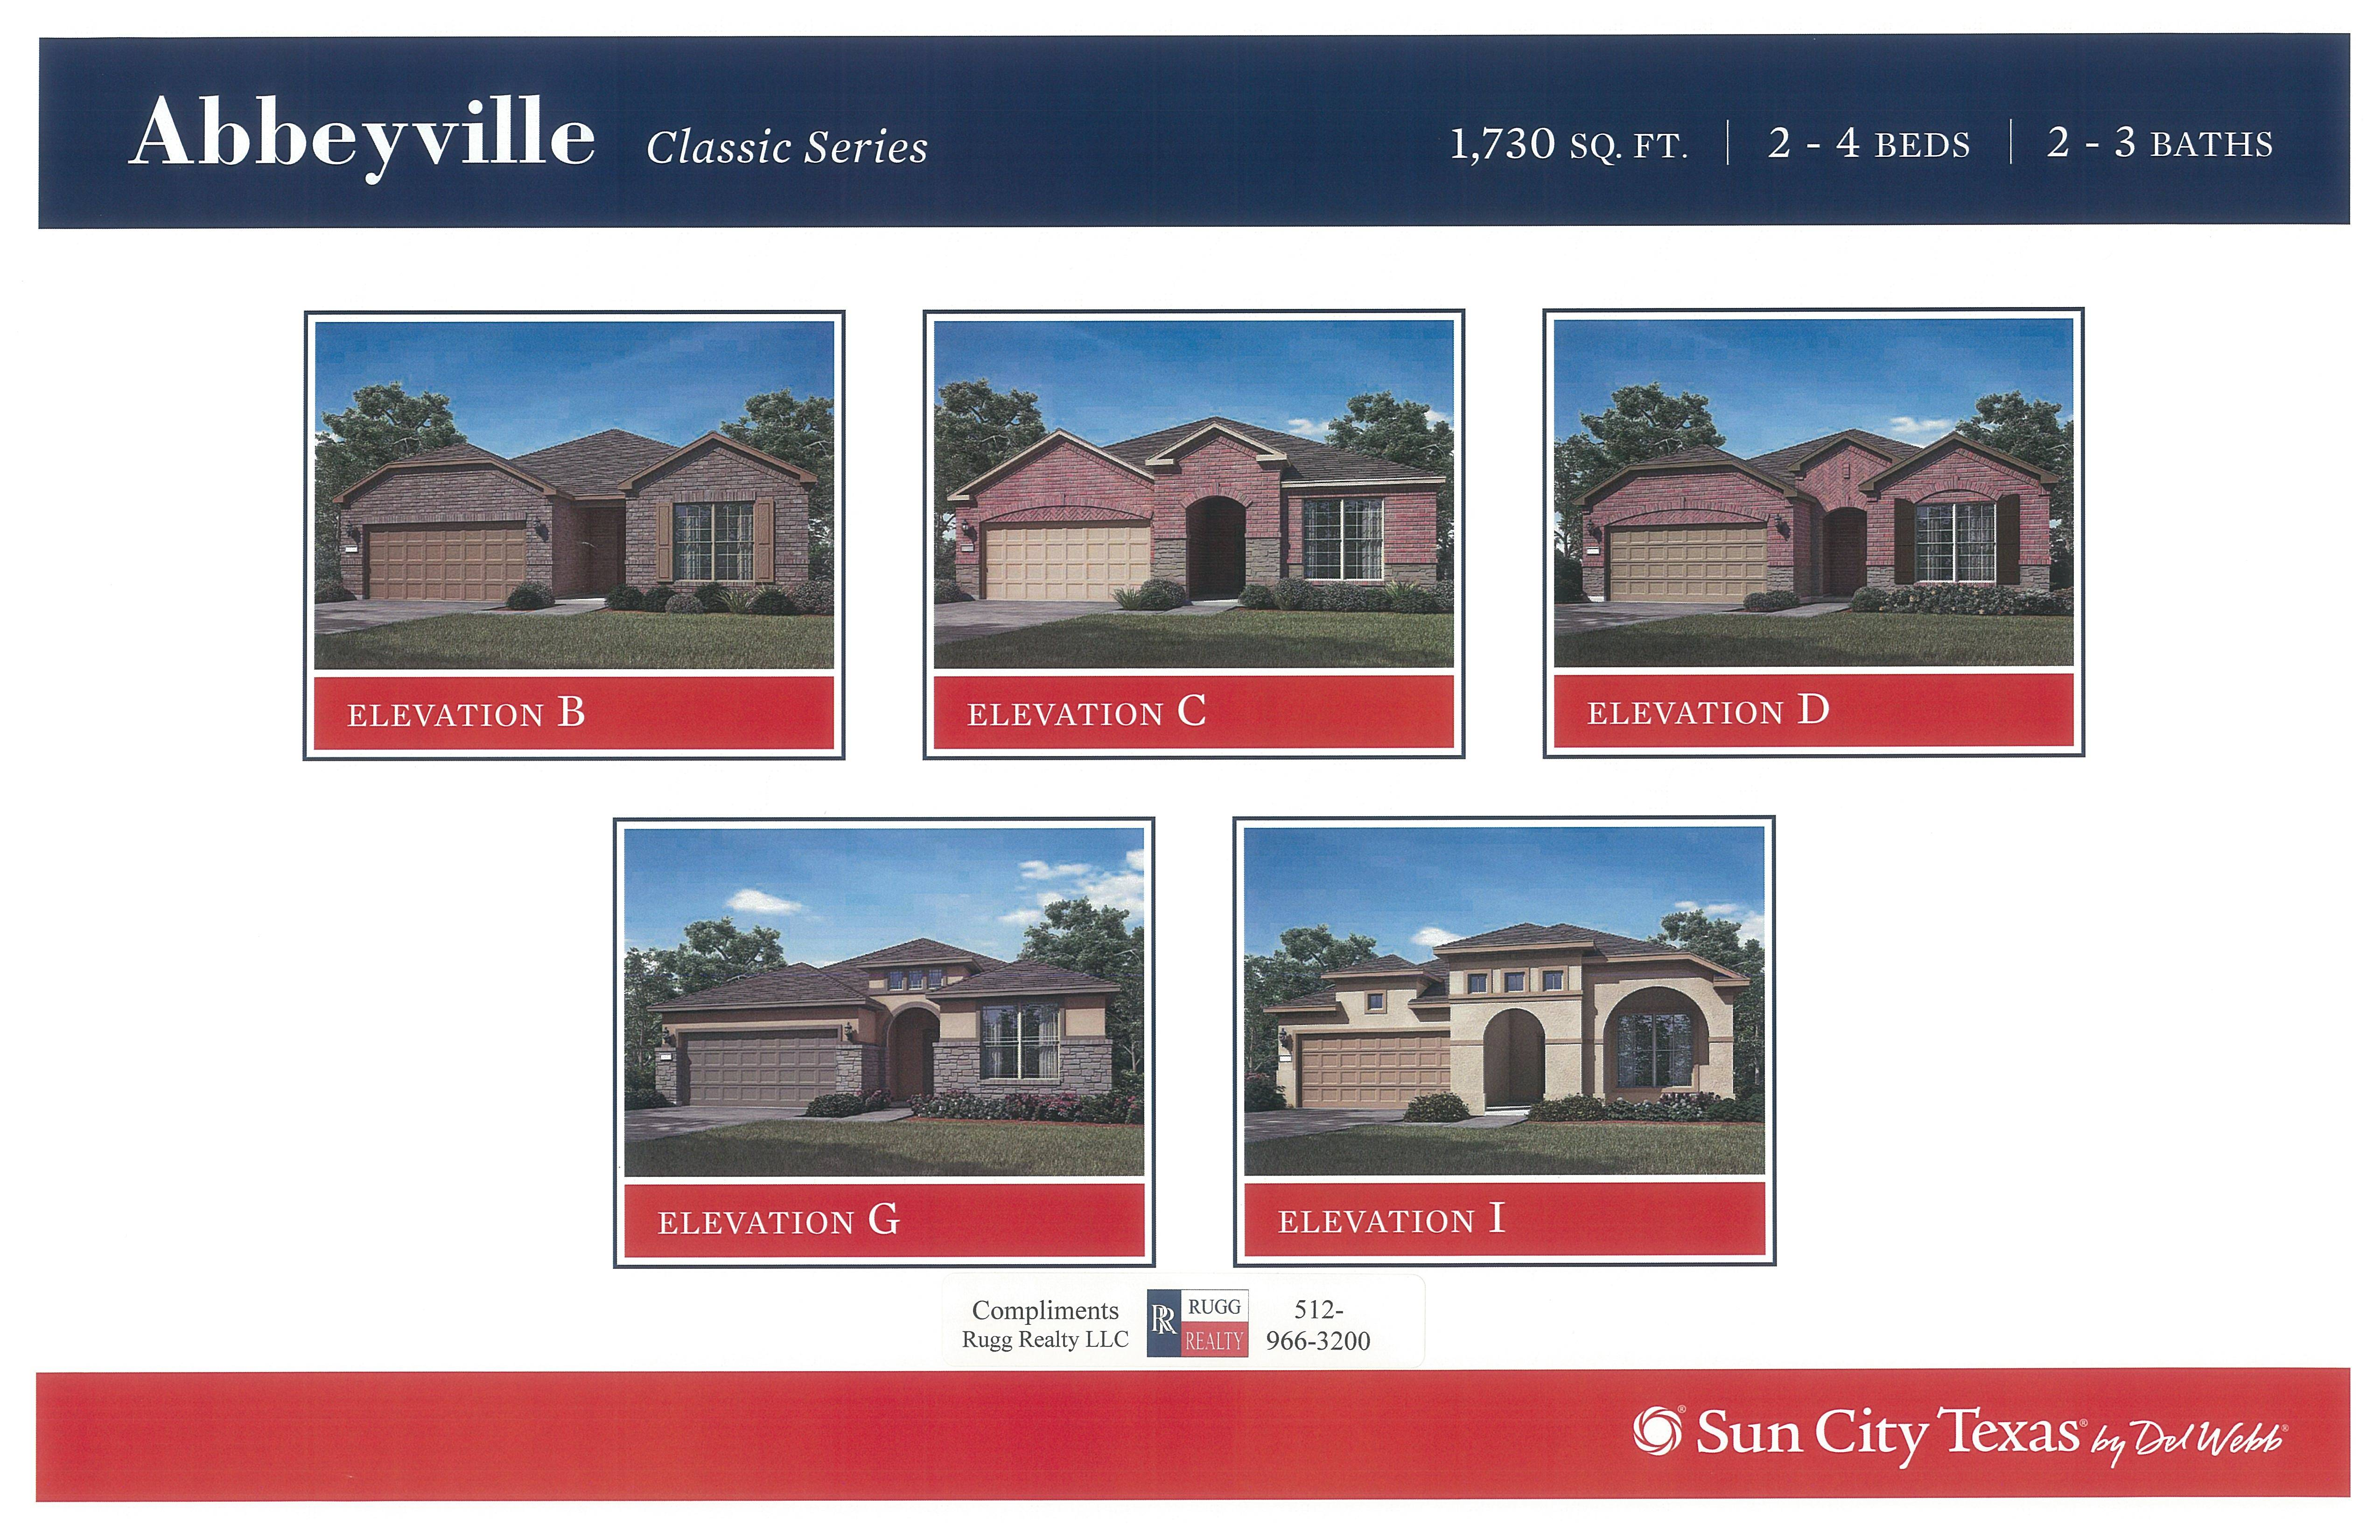 New sun city texas 2015 classic series models about t for Classic homes realty llc